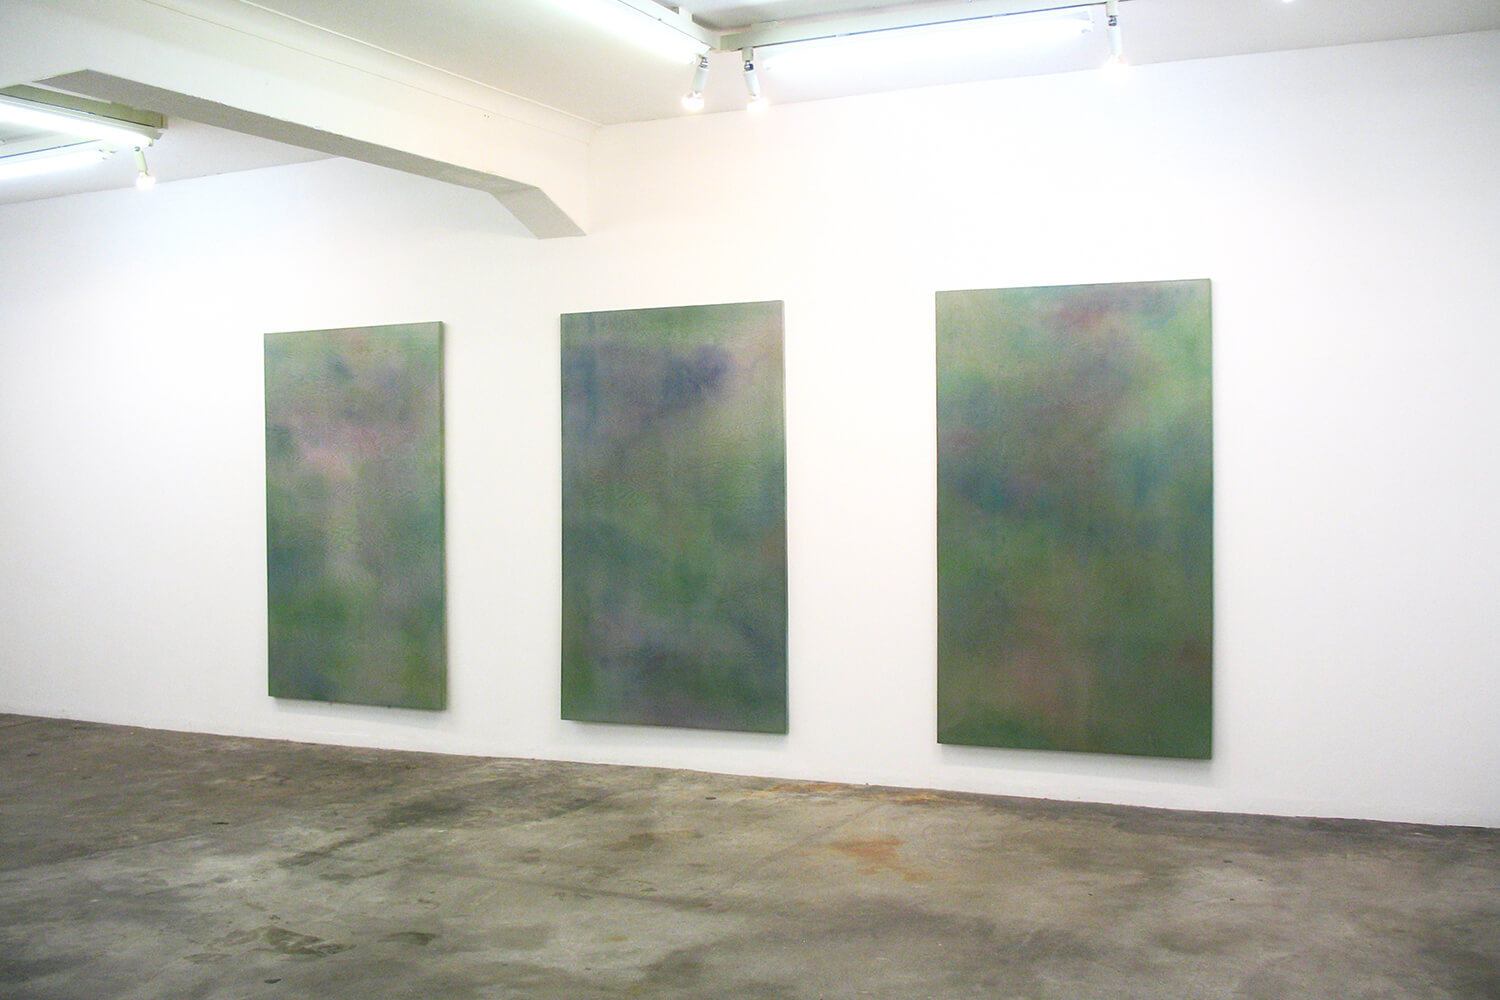 Installation View - VOCA出展作3点